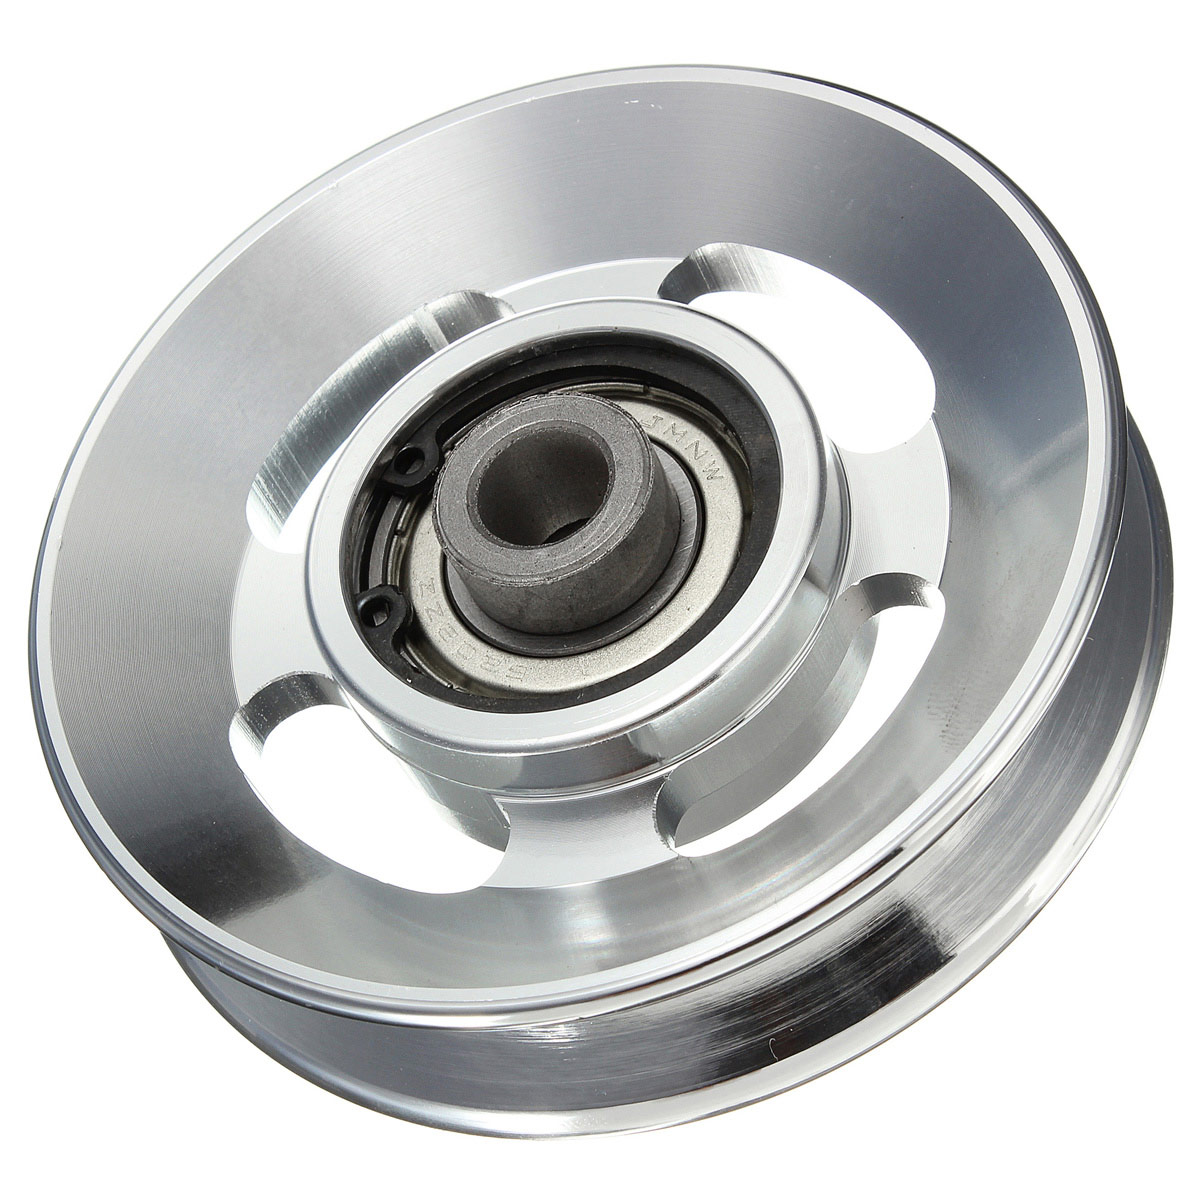 Universal 88mm Aluminum Bearing Pulley Wheel Cable Gym ...